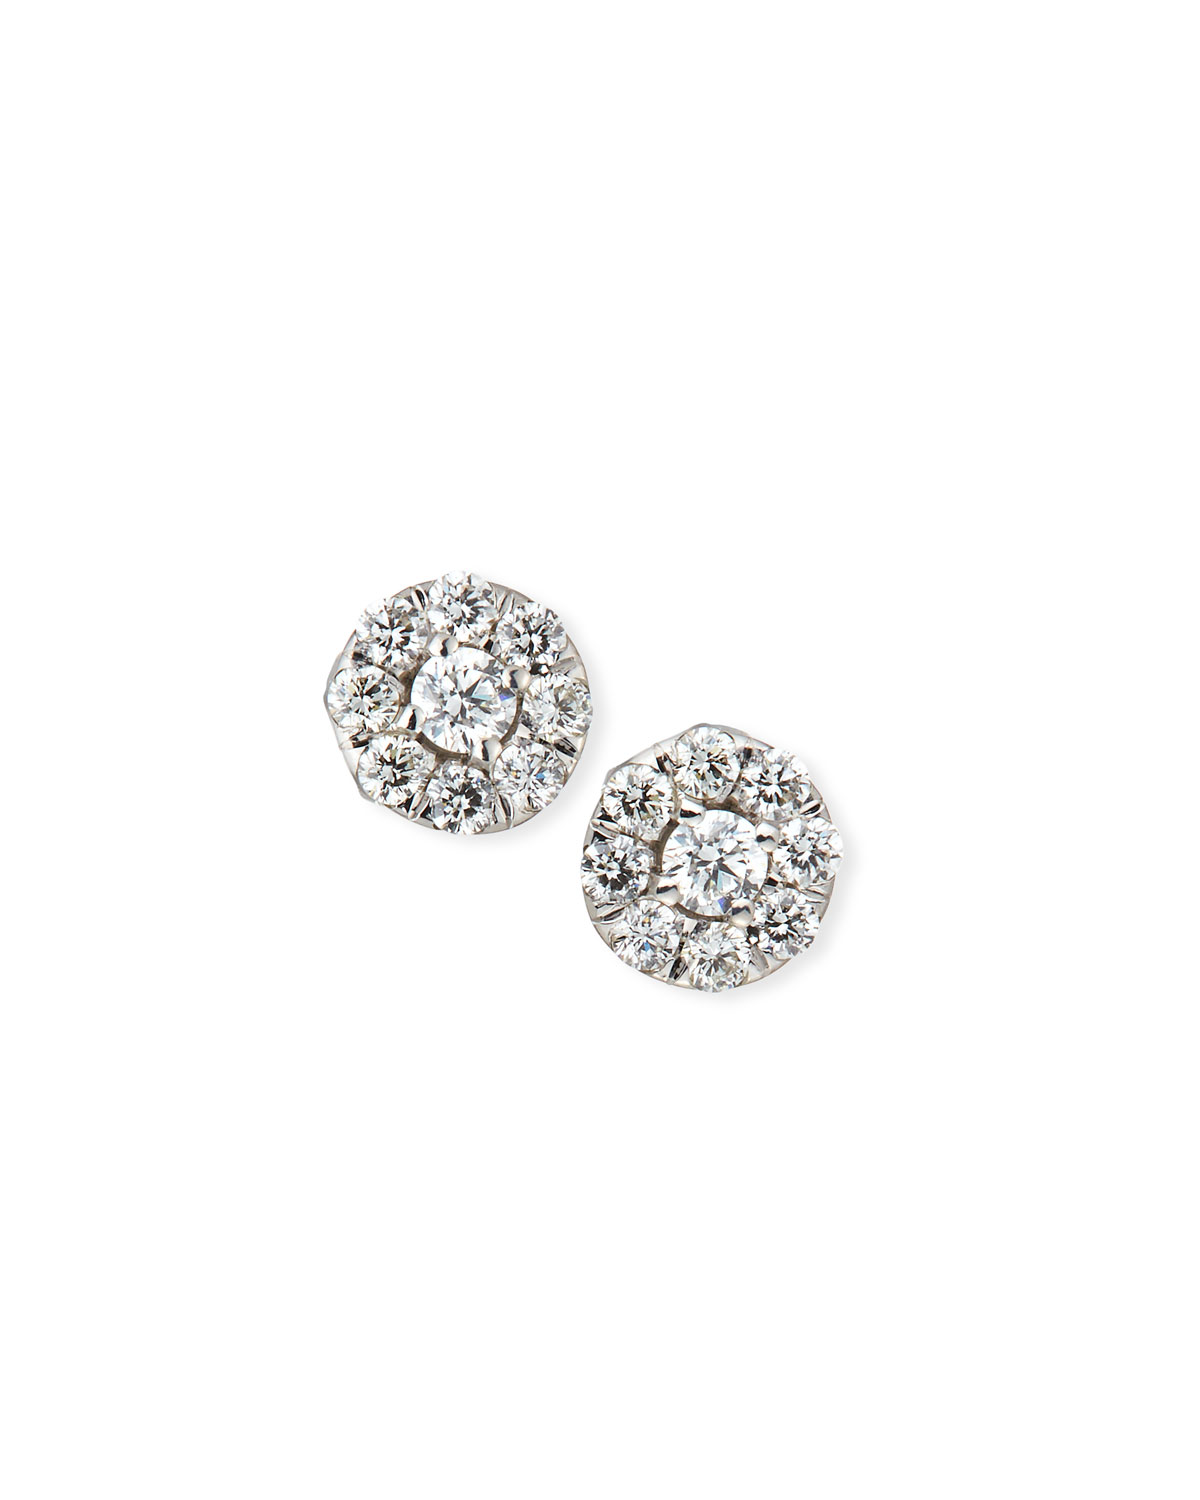 Roberto Coin 18k White Gold Diamond Halo Stud Earrings fmWpG6